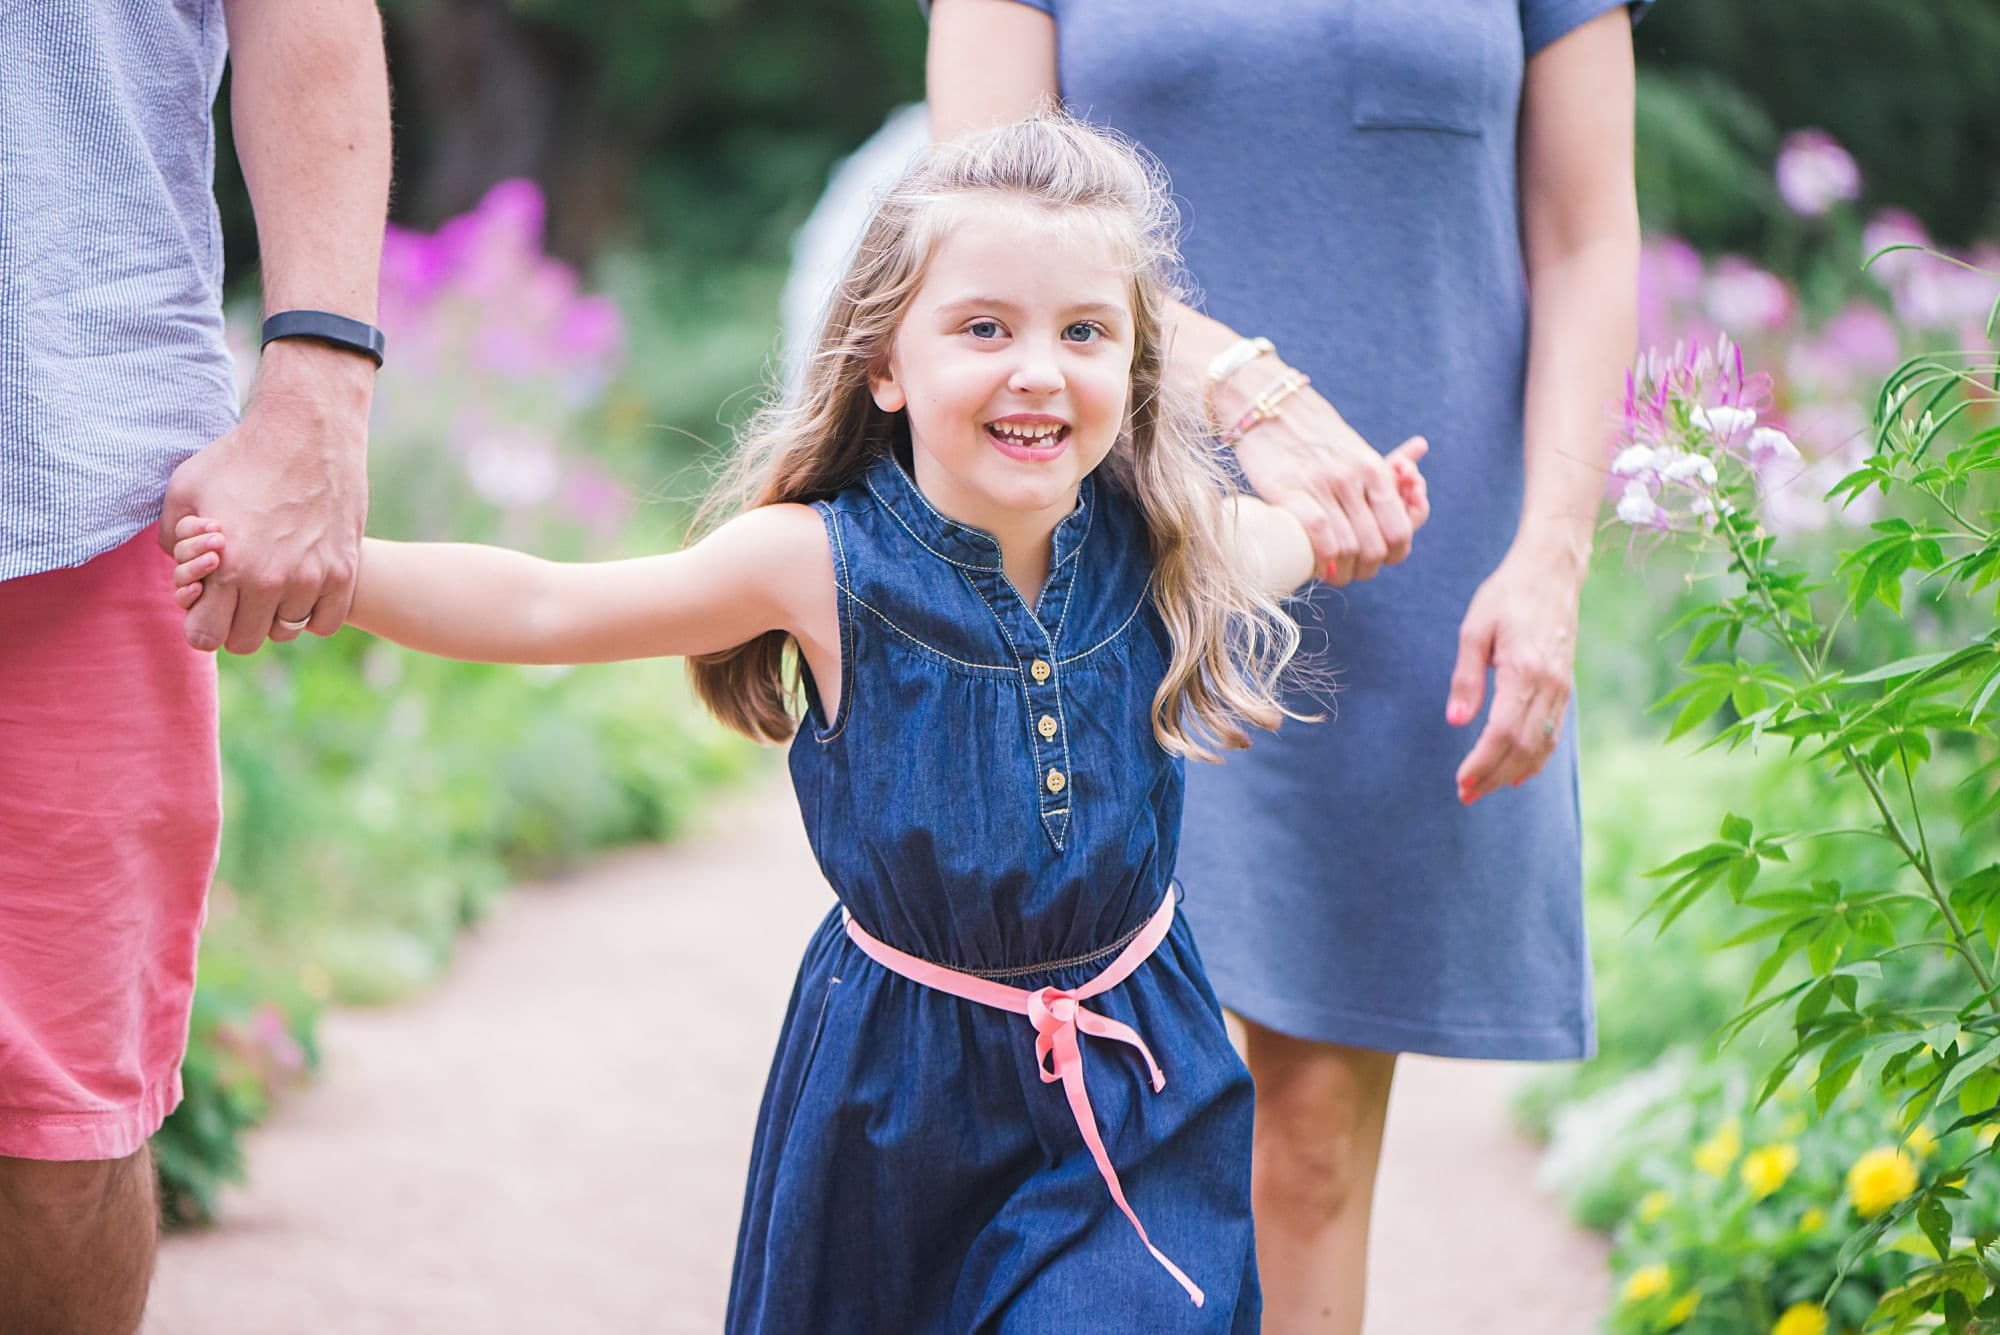 Close up of little girl holding hands with her parents walking on a path, wearing a blue dress with pink belt